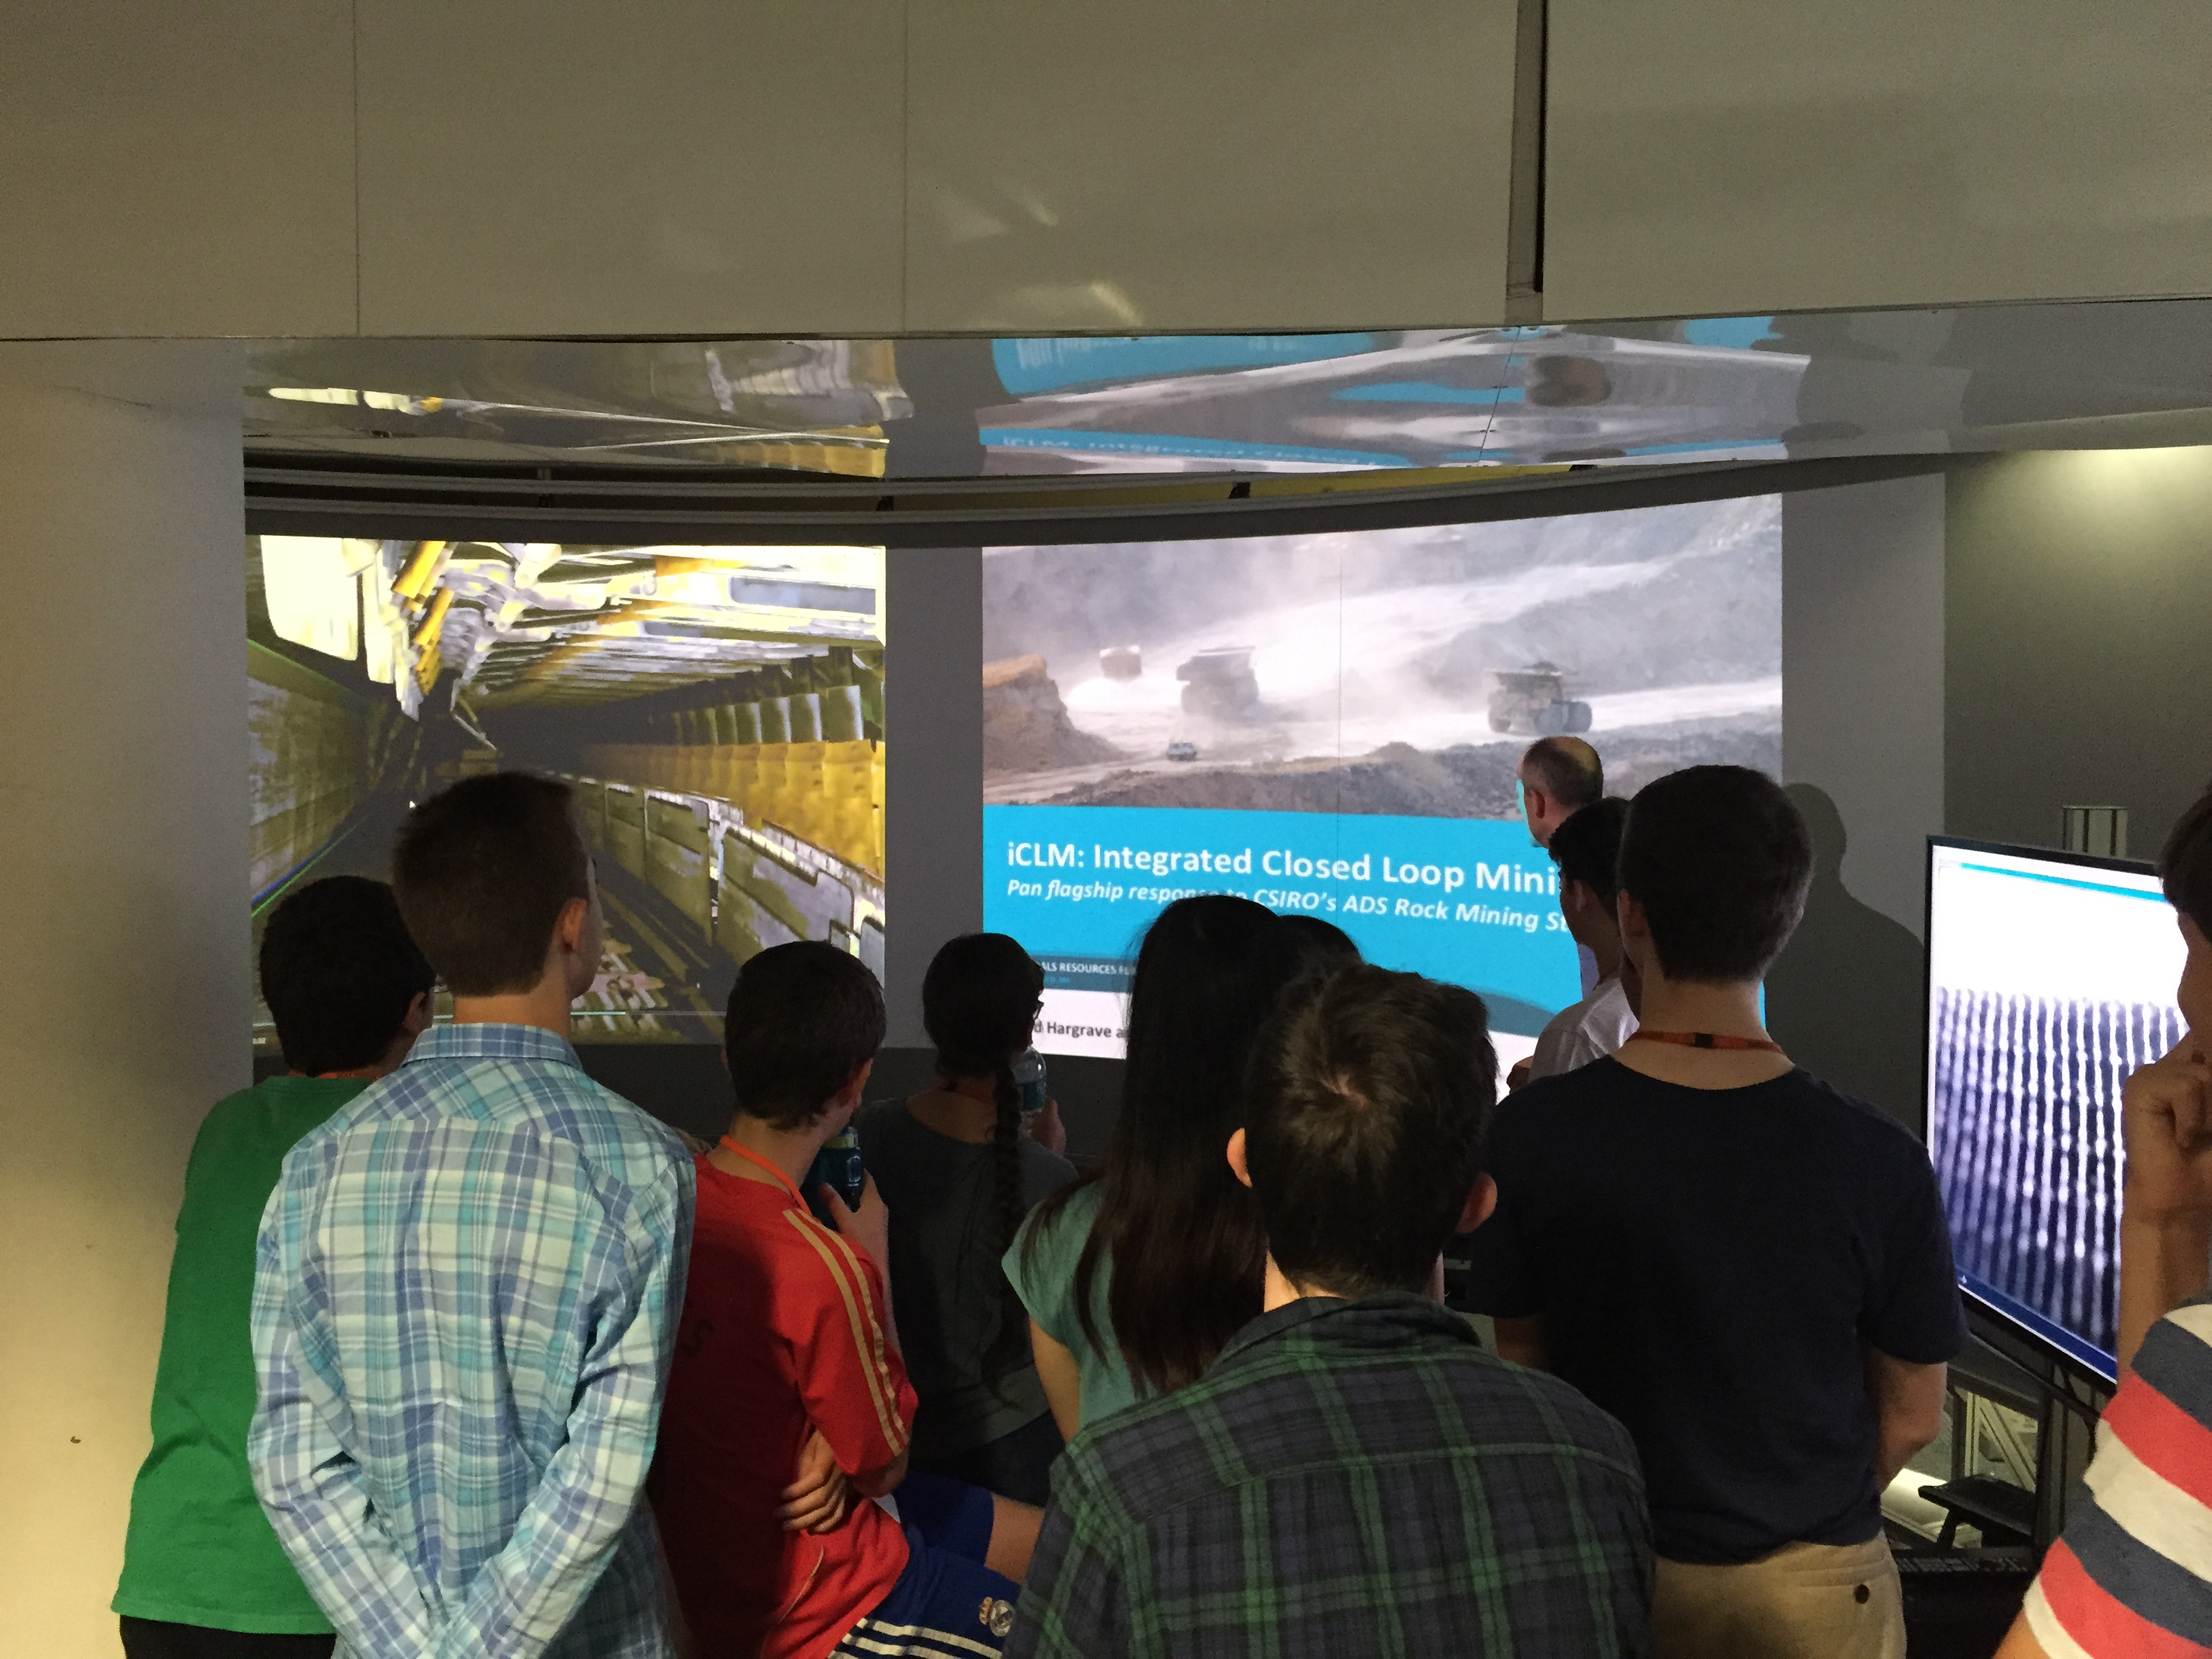 Students standing around several large screens as part of an immersive visualisation facility.